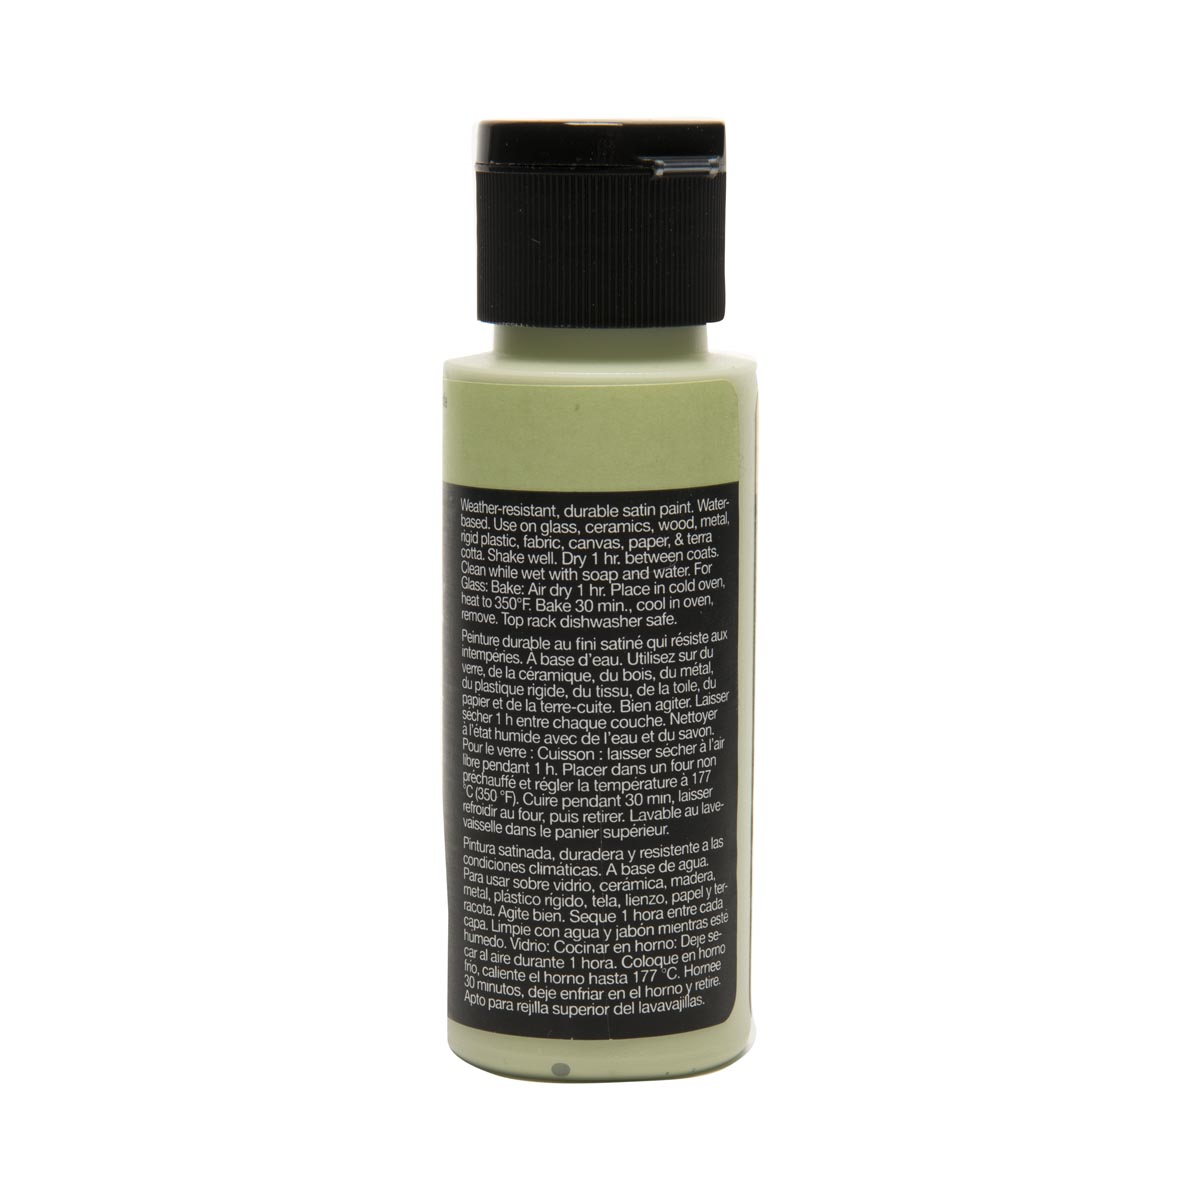 Delta Ceramcoat ® Select Multi-Surface Acrylic Paint - Satin - Green Tea, 2 oz. - 02916